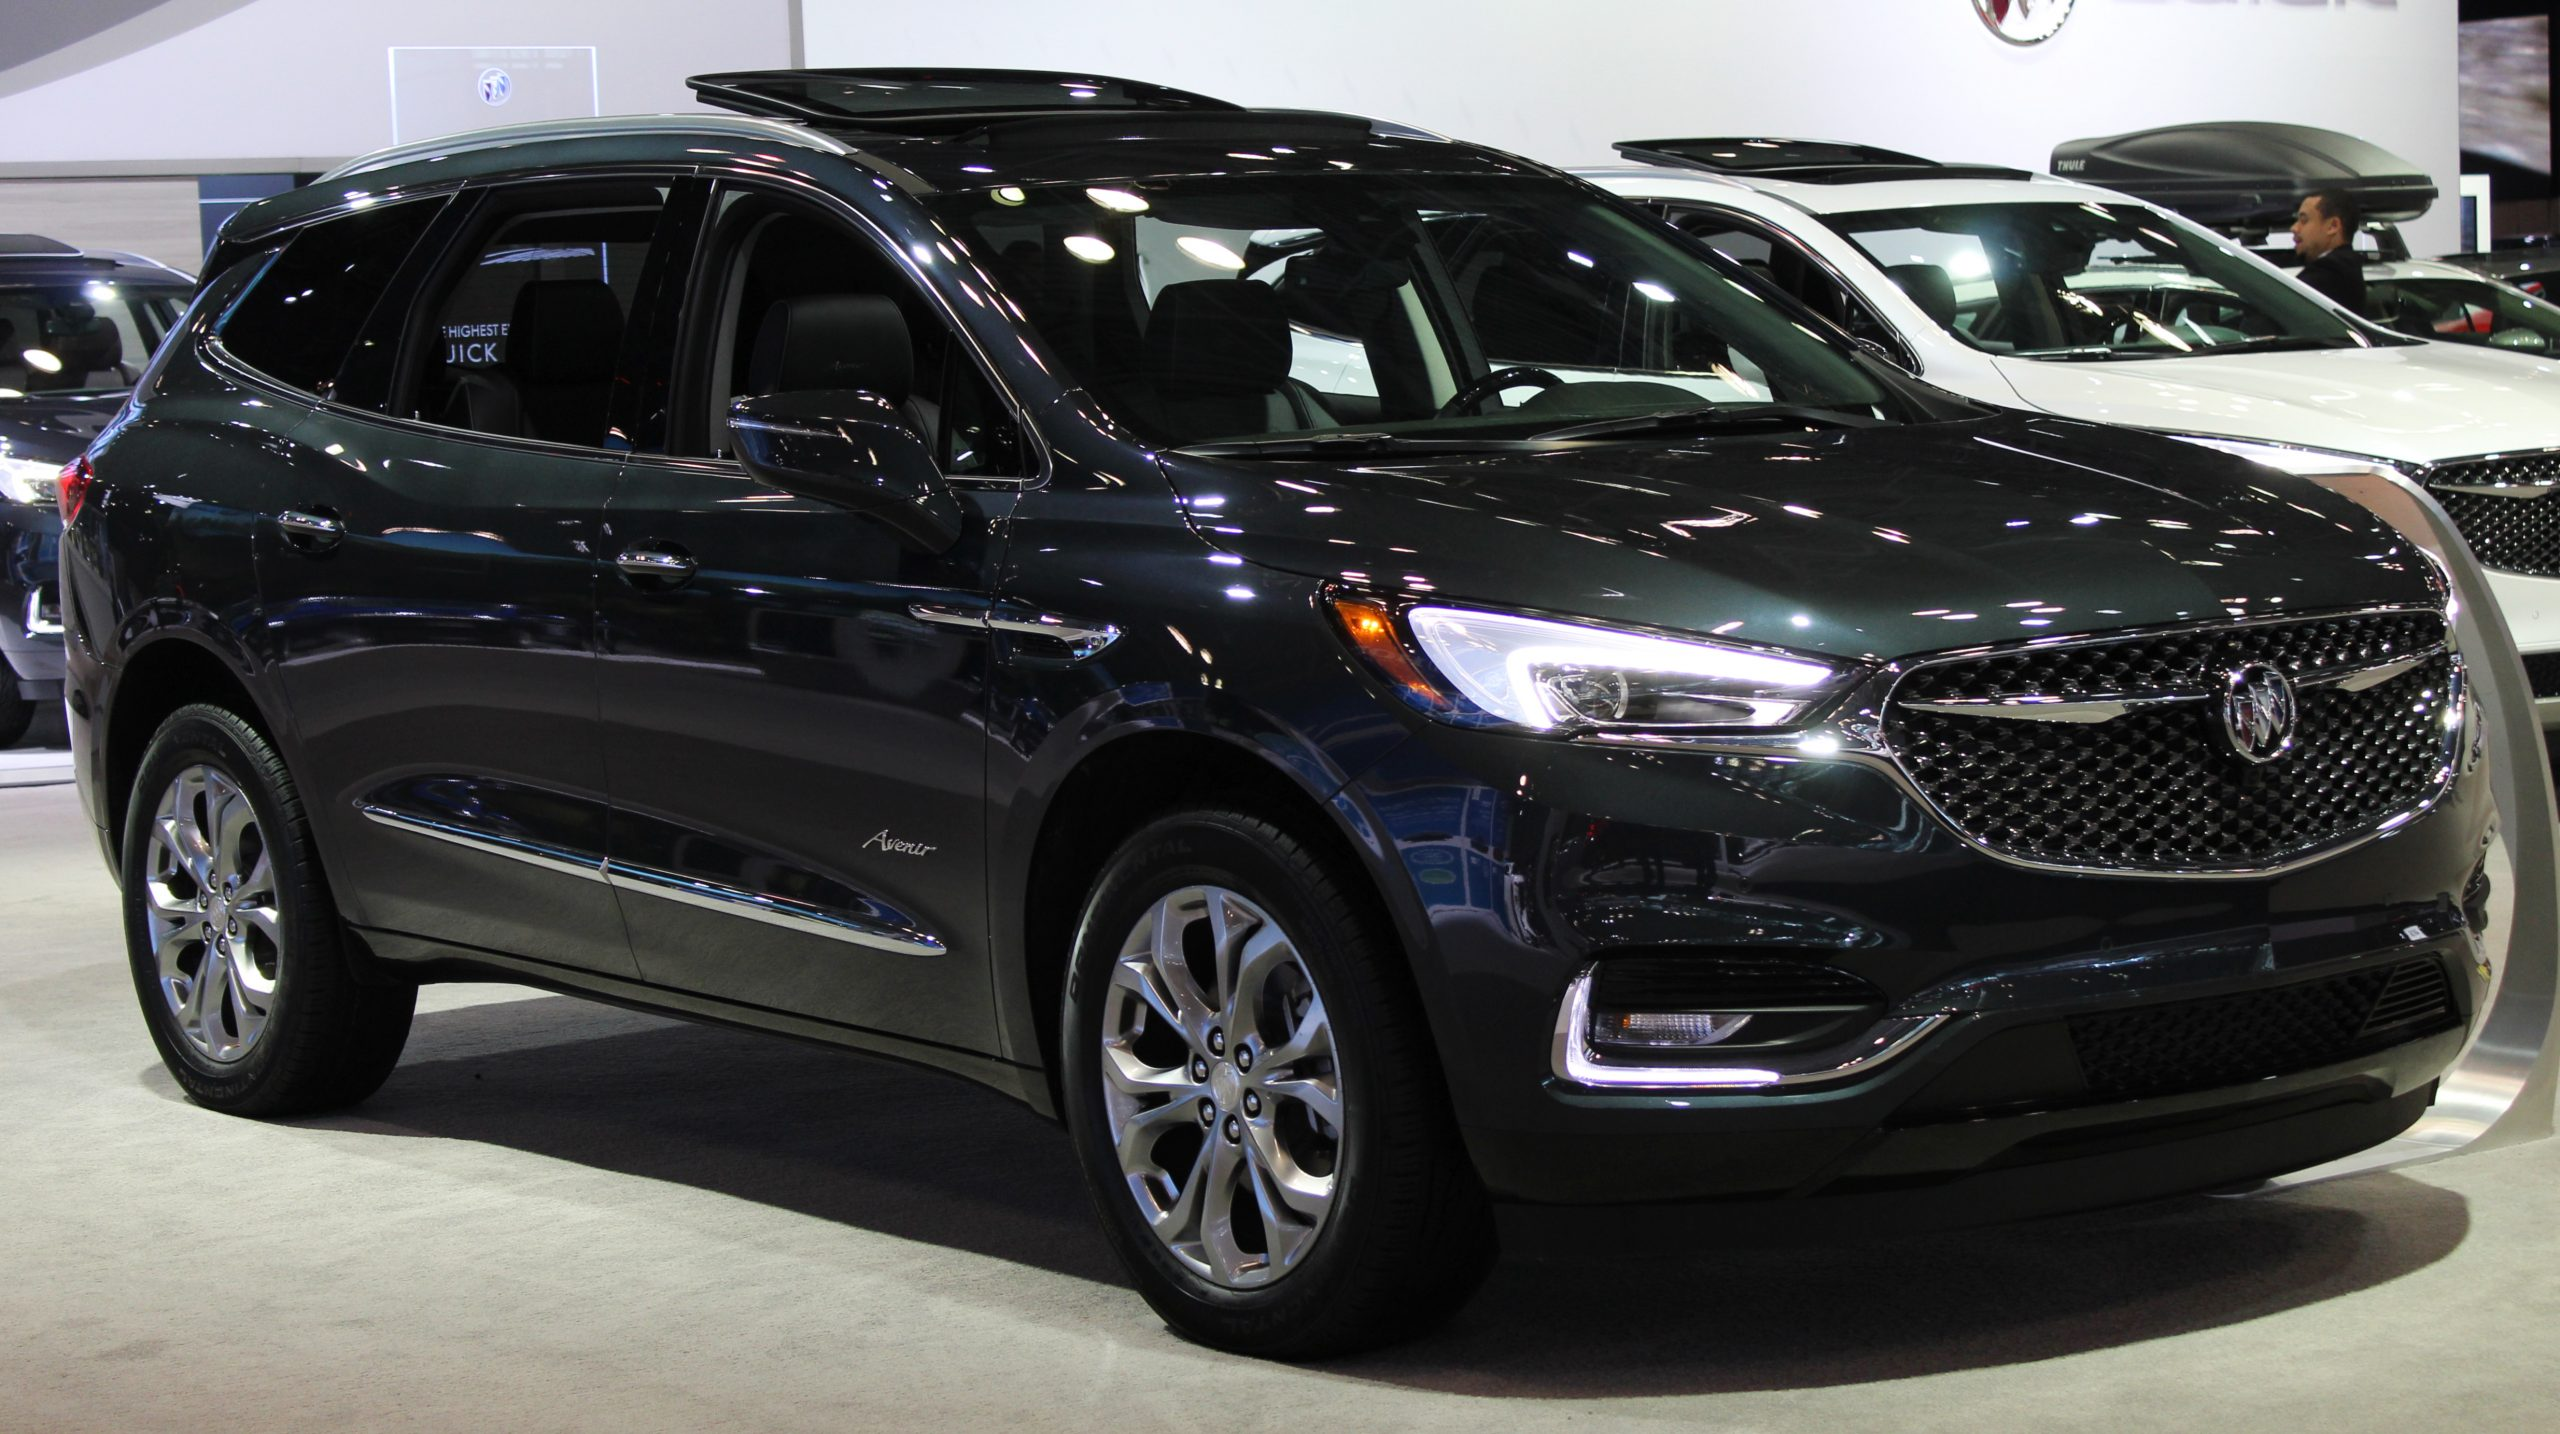 Buick Enclave - Wikipedia 2022 Buick Enclave Updates, Weight, Wheelbase